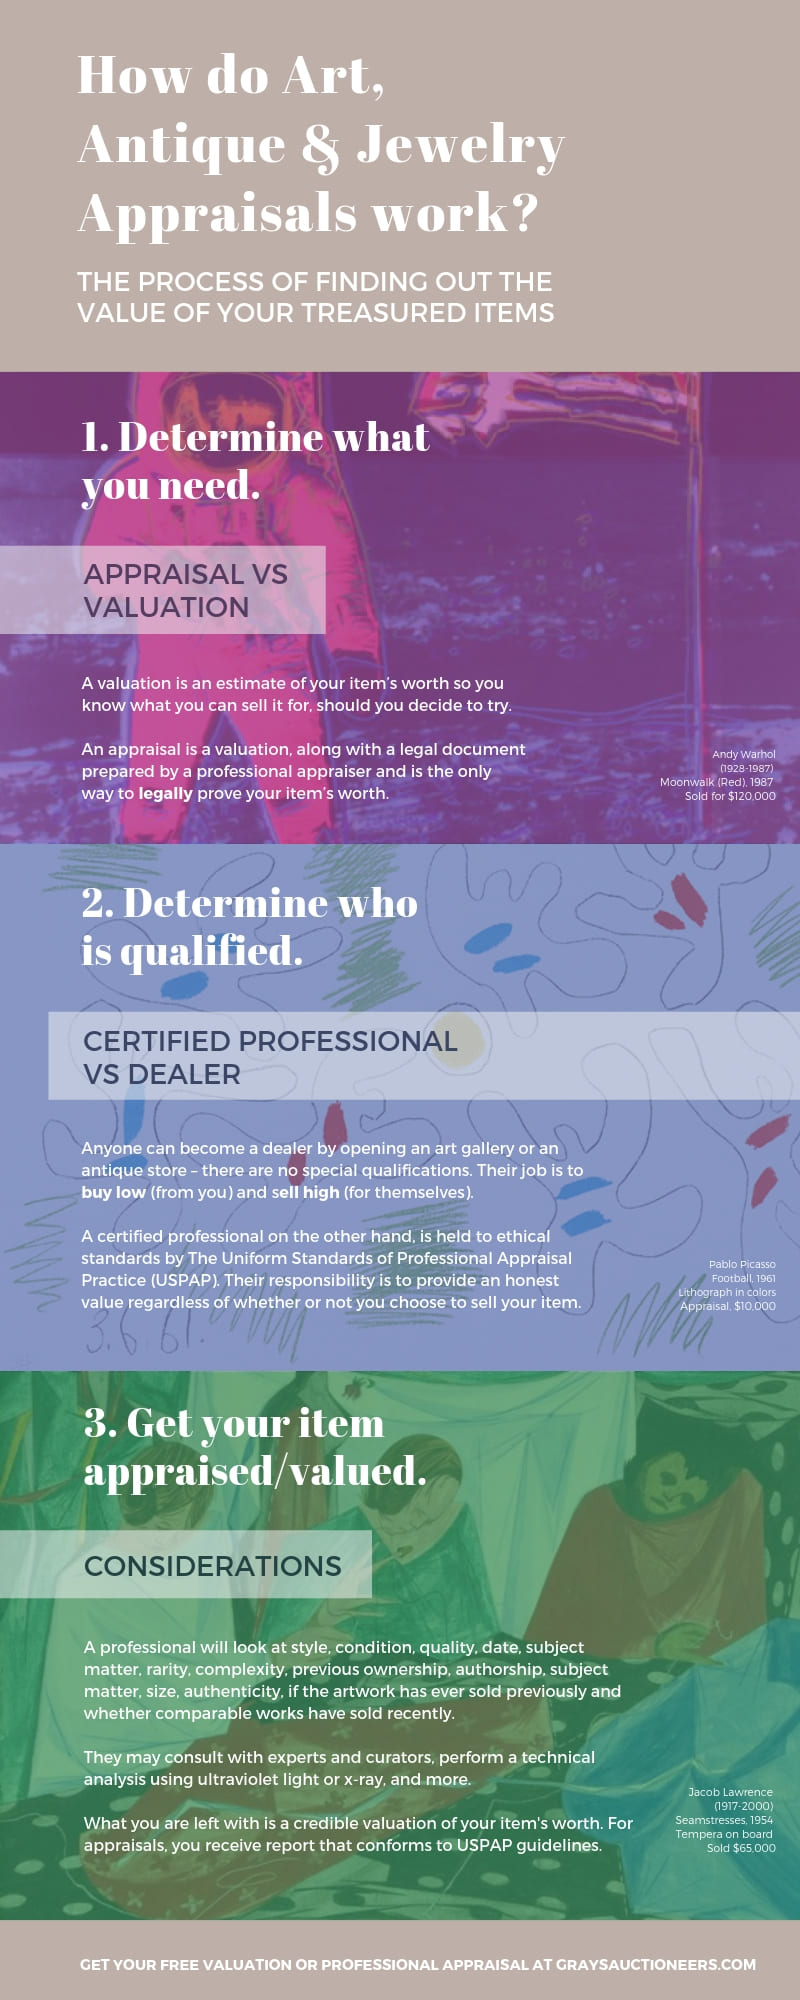 How-art-appraisals-work-infographic.jpg